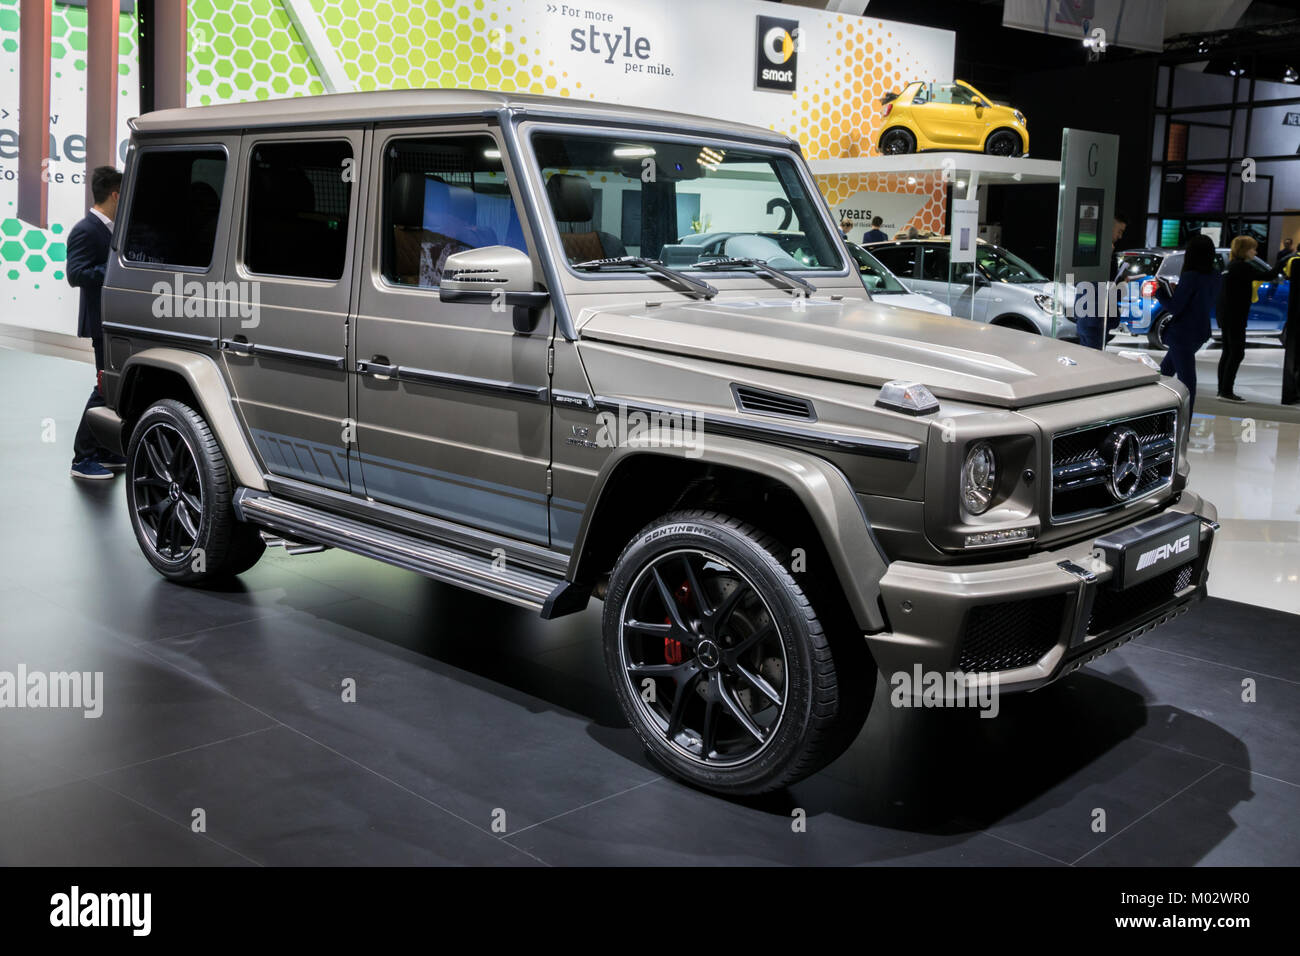 brussels jan 10 2018 mercedes benz g class amg 4x4 car showcased stock photo royalty free. Black Bedroom Furniture Sets. Home Design Ideas